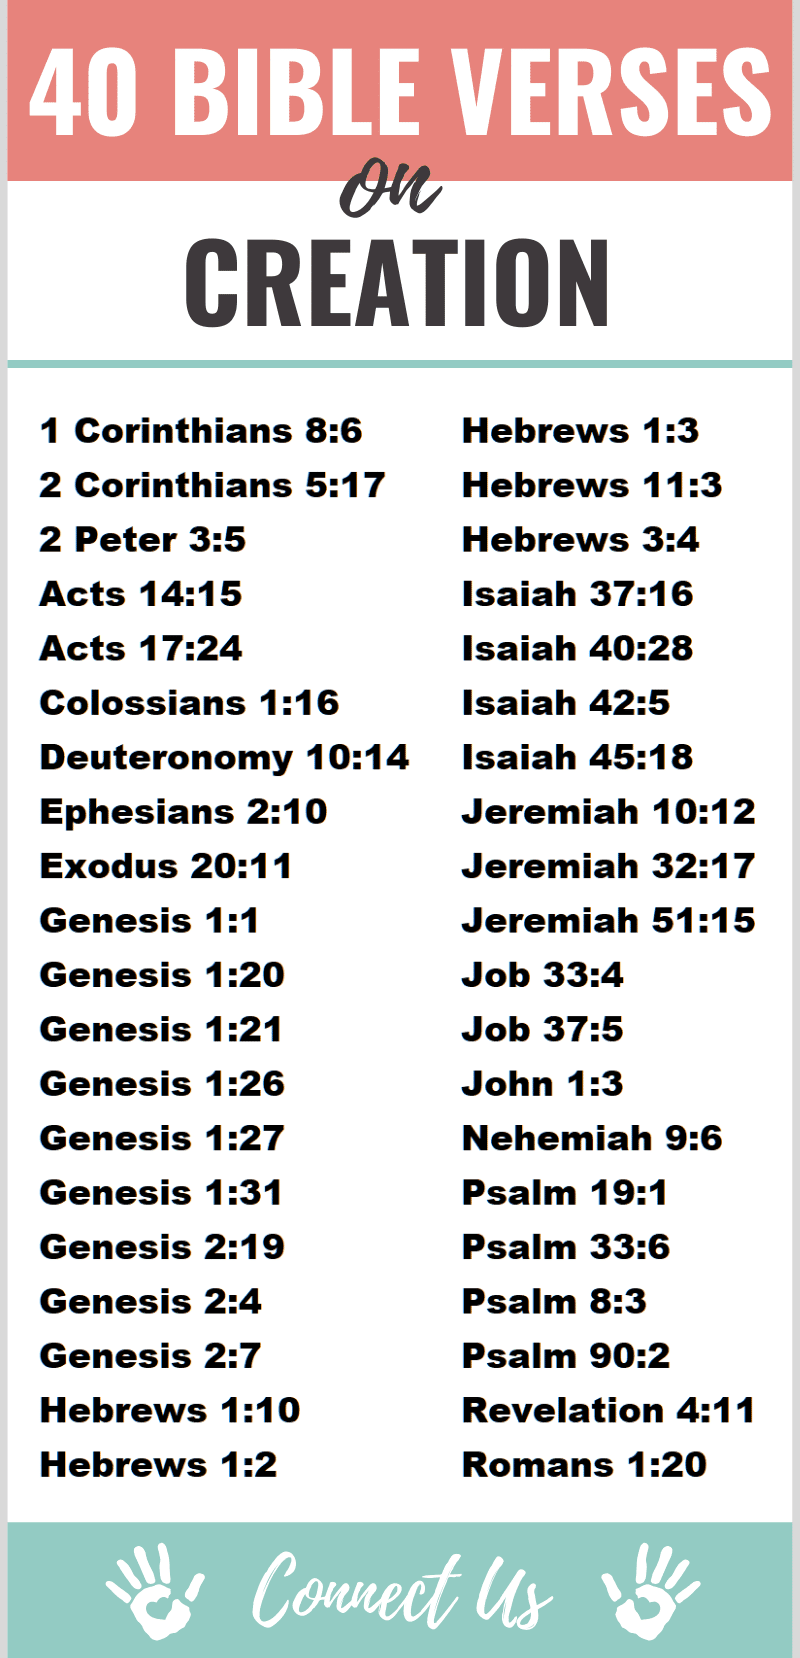 Bible Verses on Creation